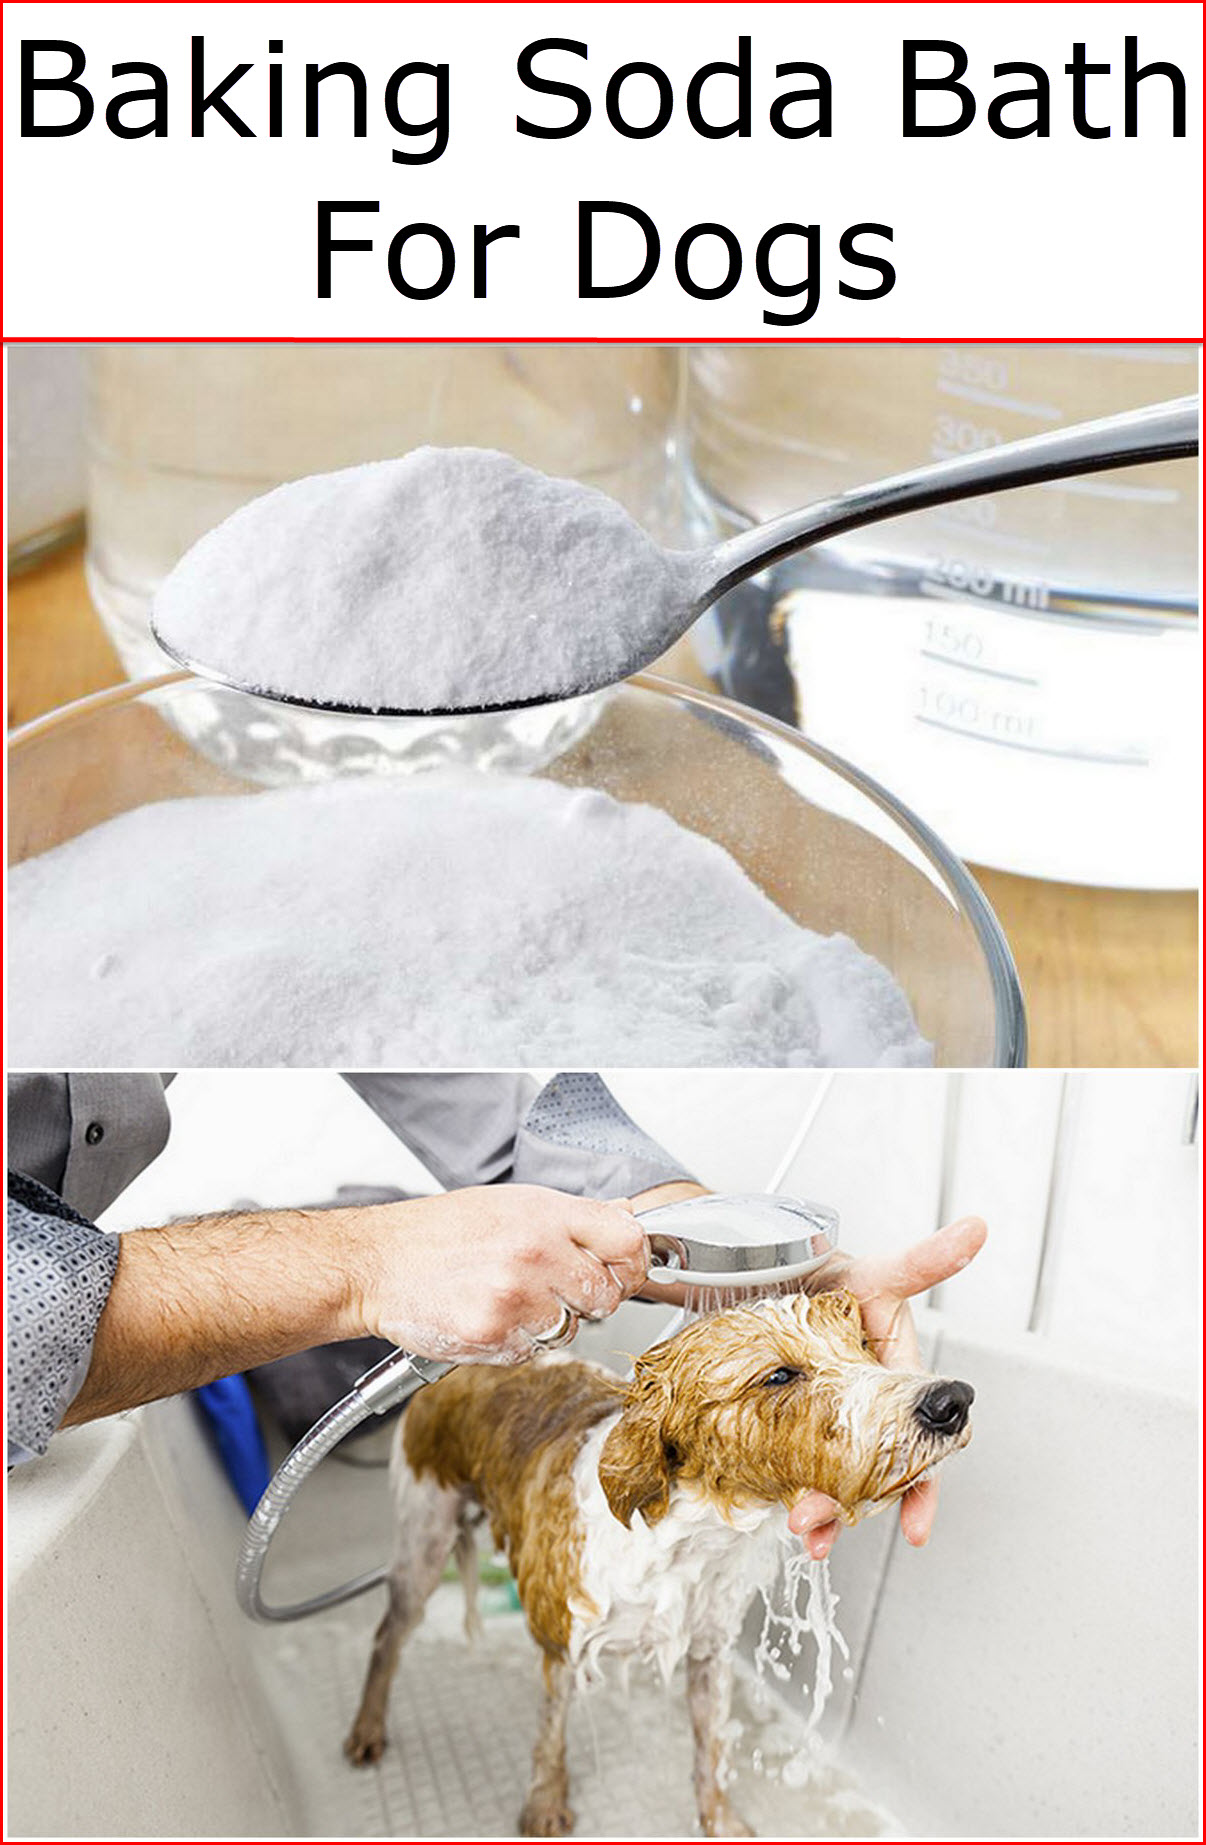 Baking Soda Bath For Dogs   Baking Soda Uses and DIY Home ...